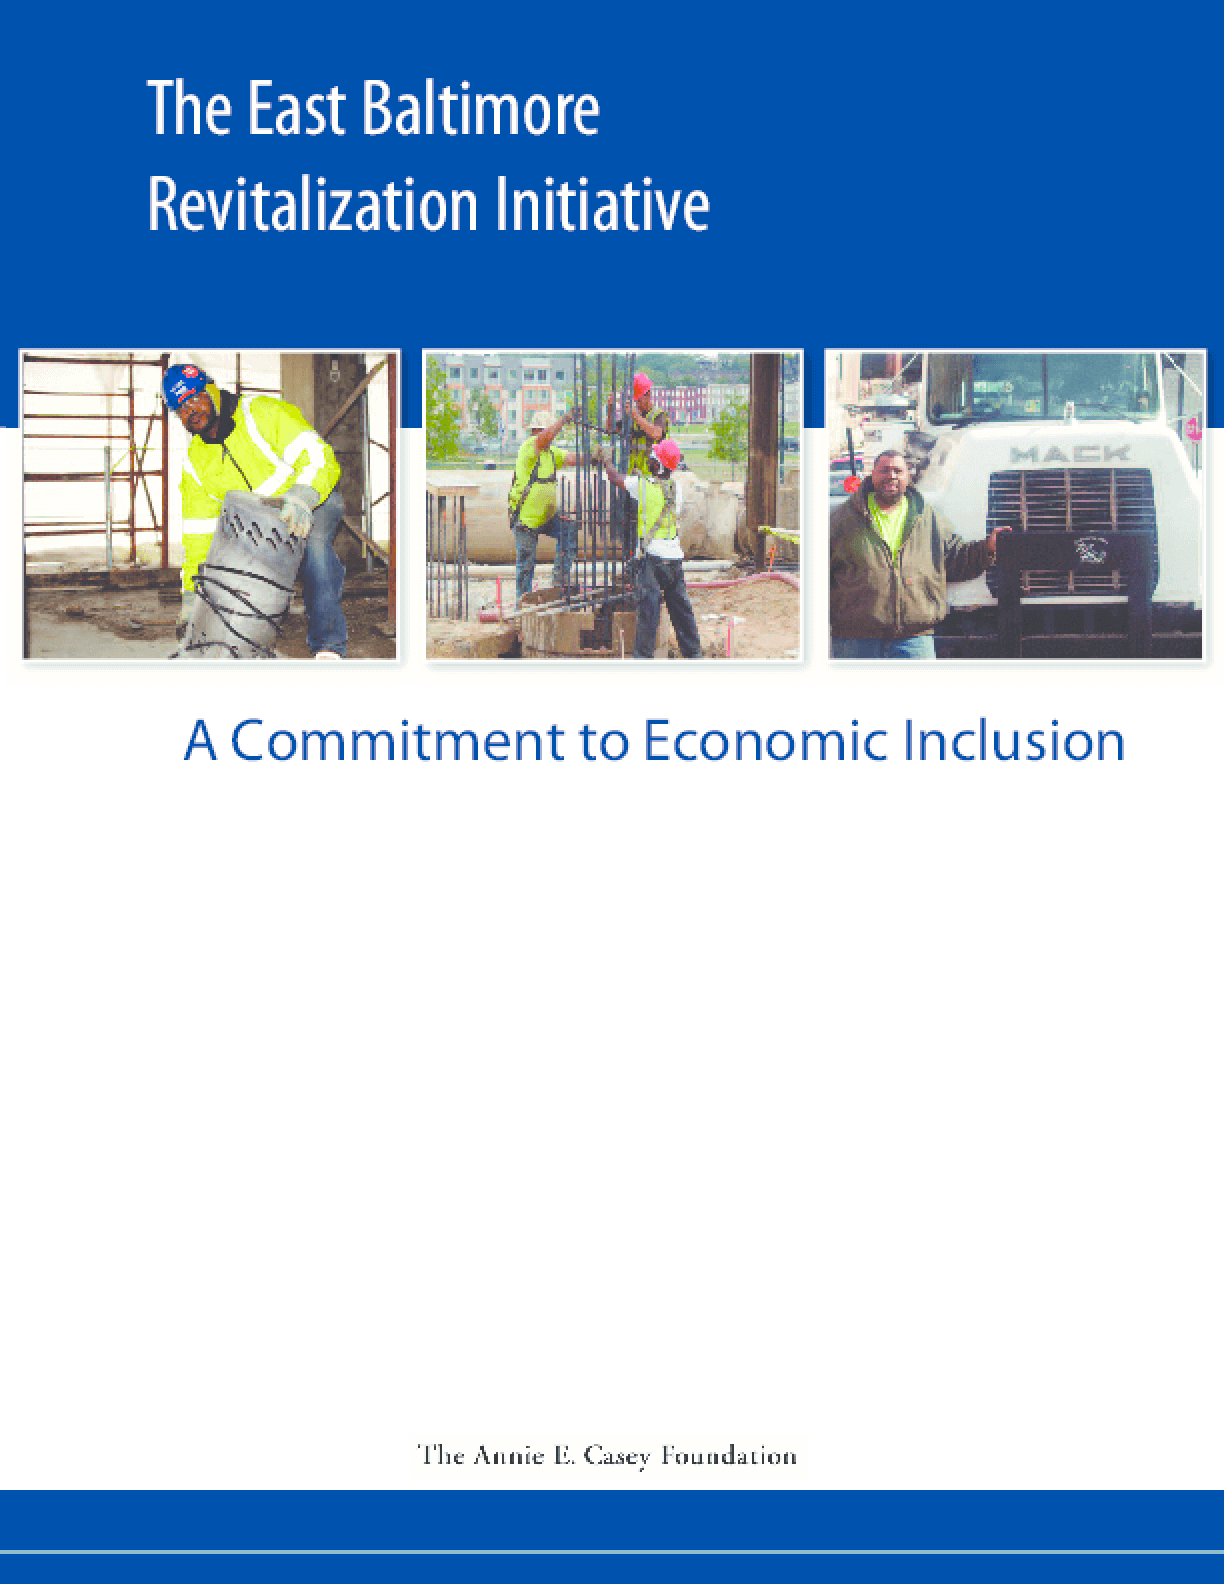 The East Baltimore Revitalization Initiative: A Commitment to Economic Inclusion